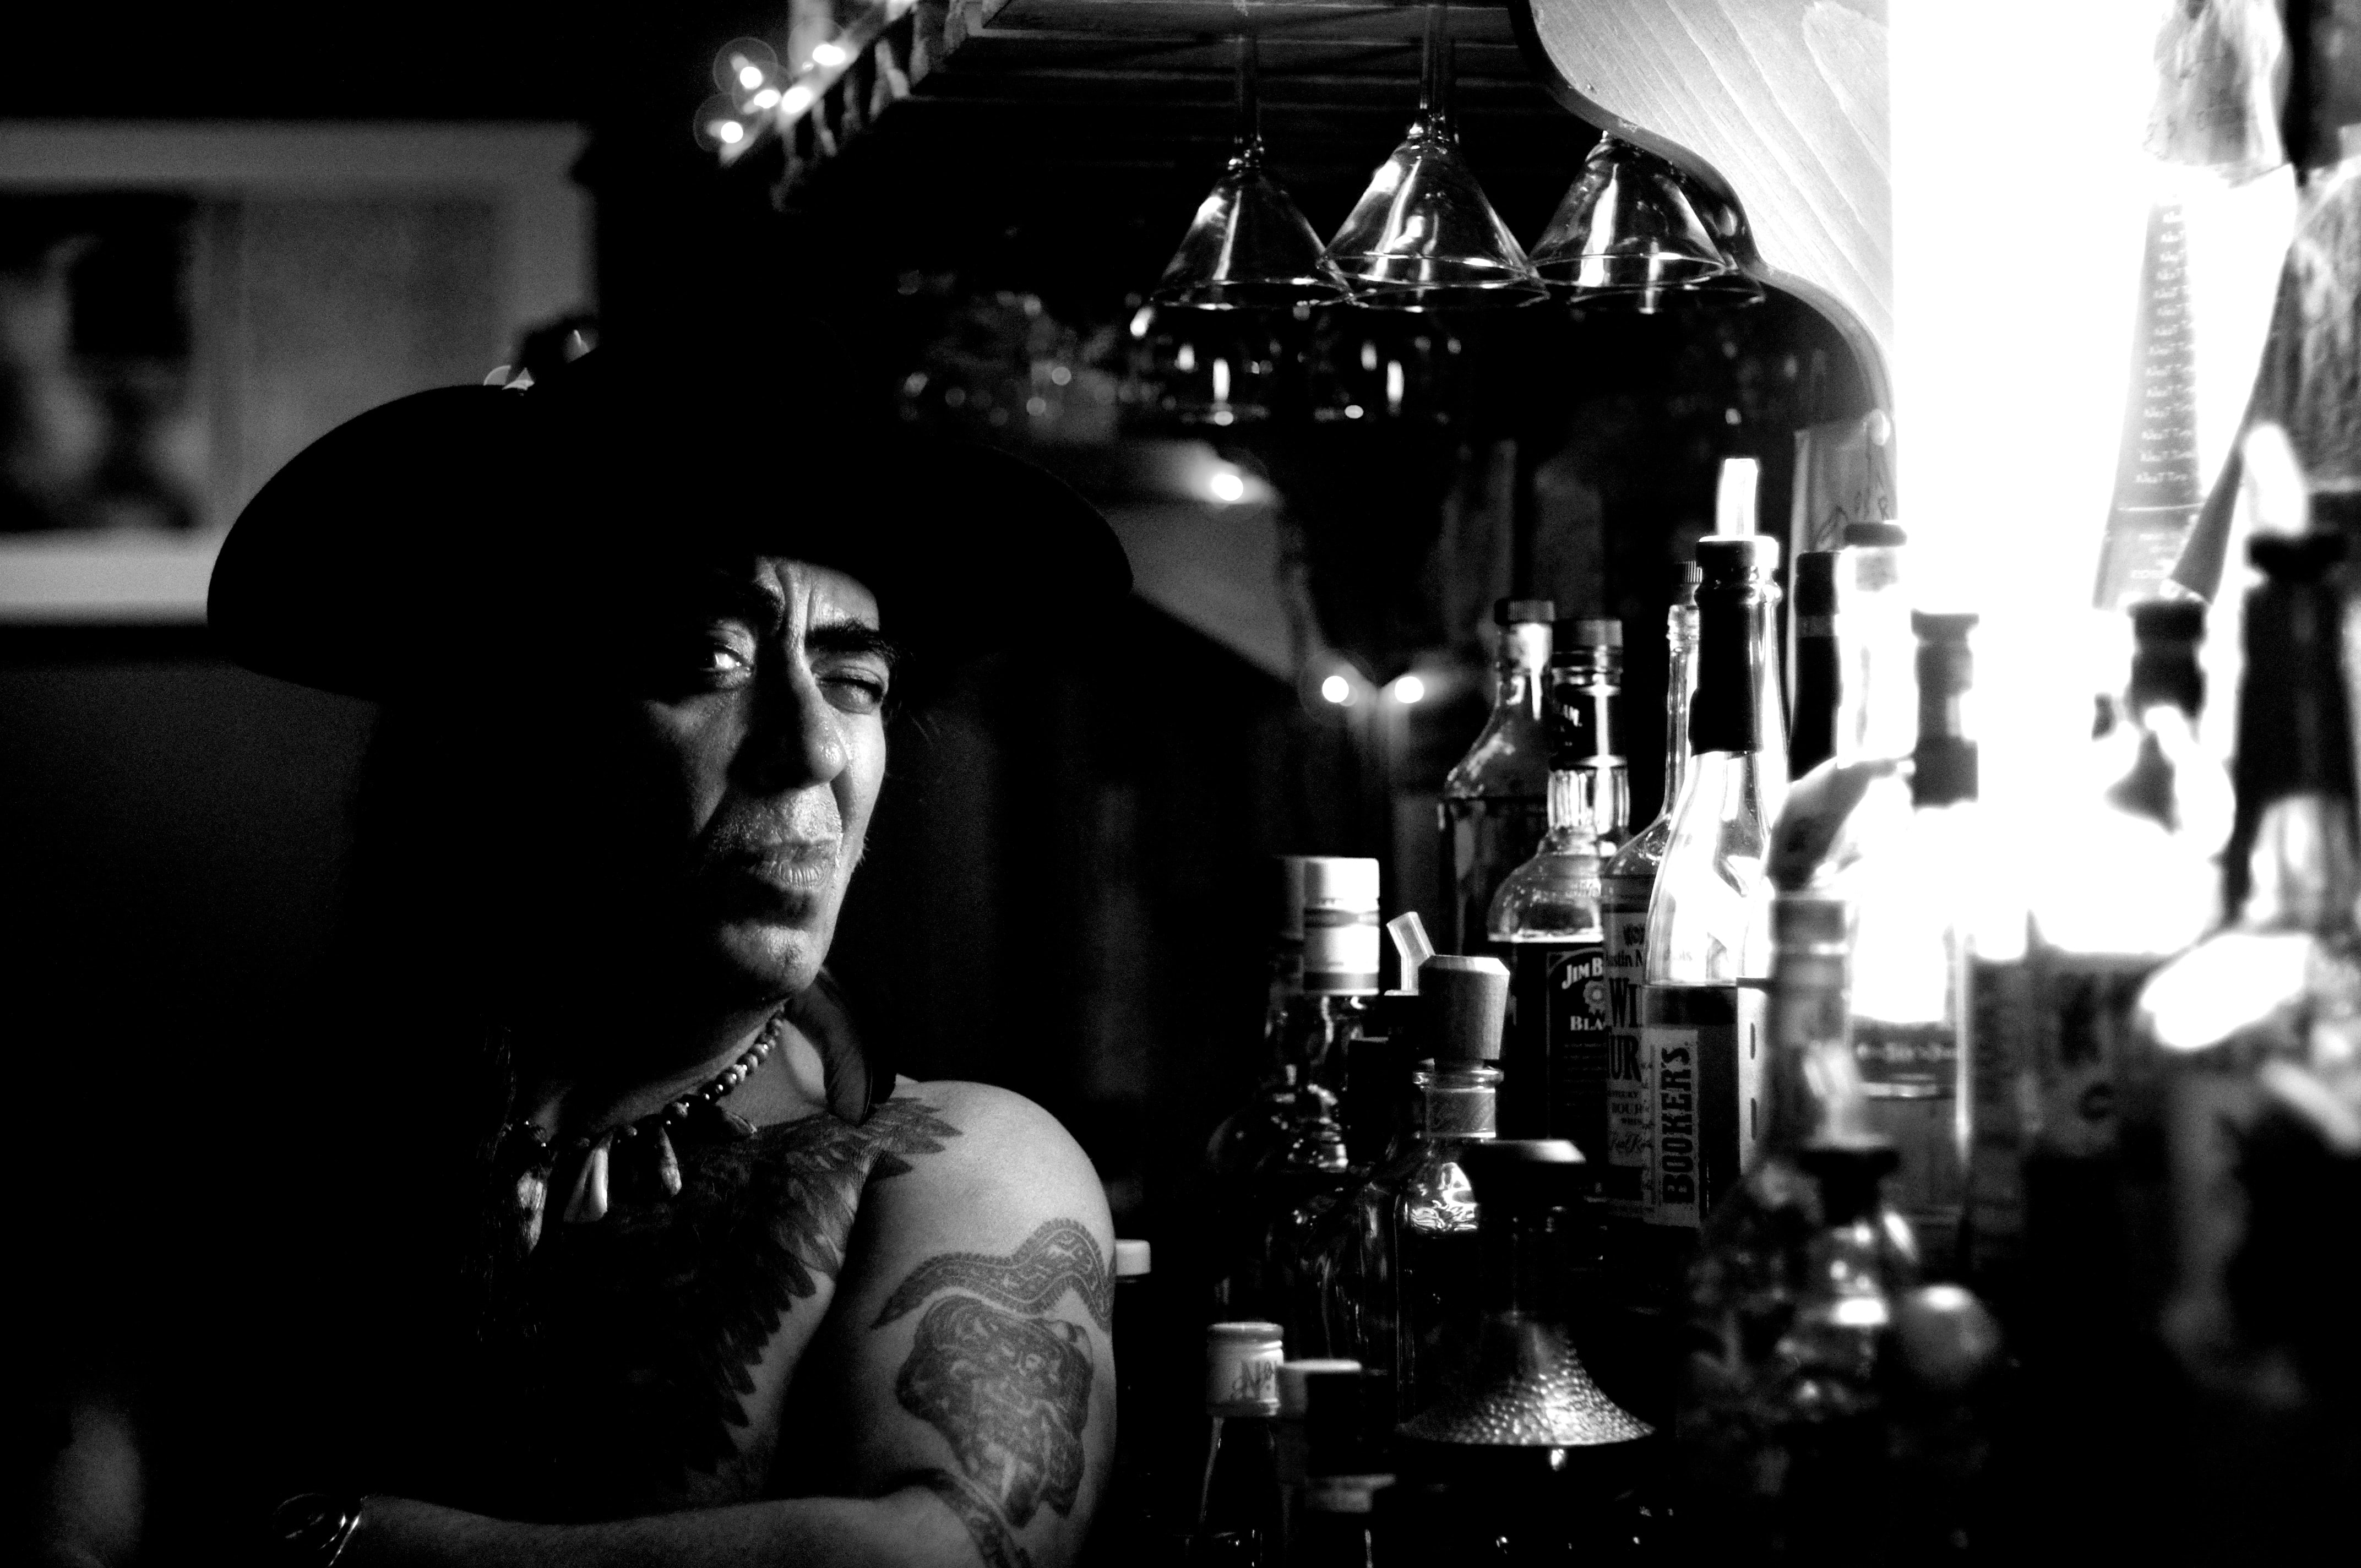 Black and white image of a tattooed man sitting next to bottles of alcohol at Rite Spot Cafe